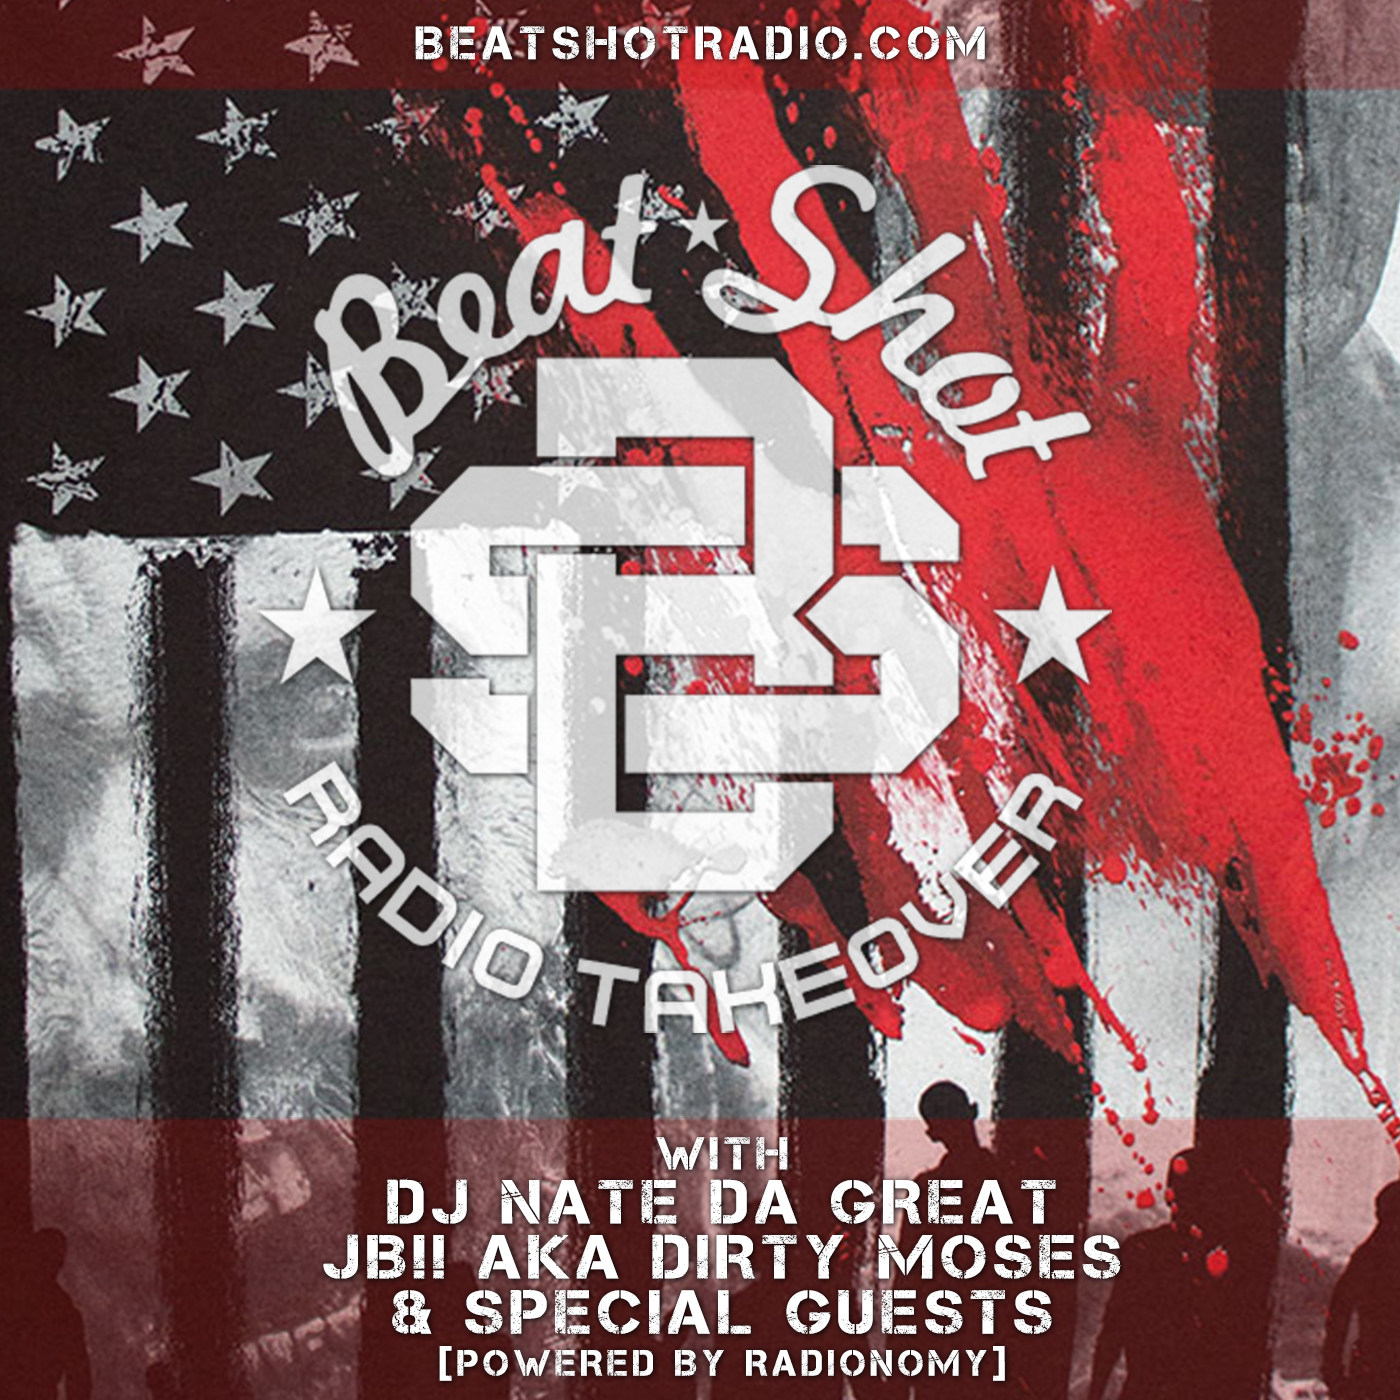 Beat*Shot Radio Takeover Podcast: BeatShot | Talk | Hip-Hop Radio